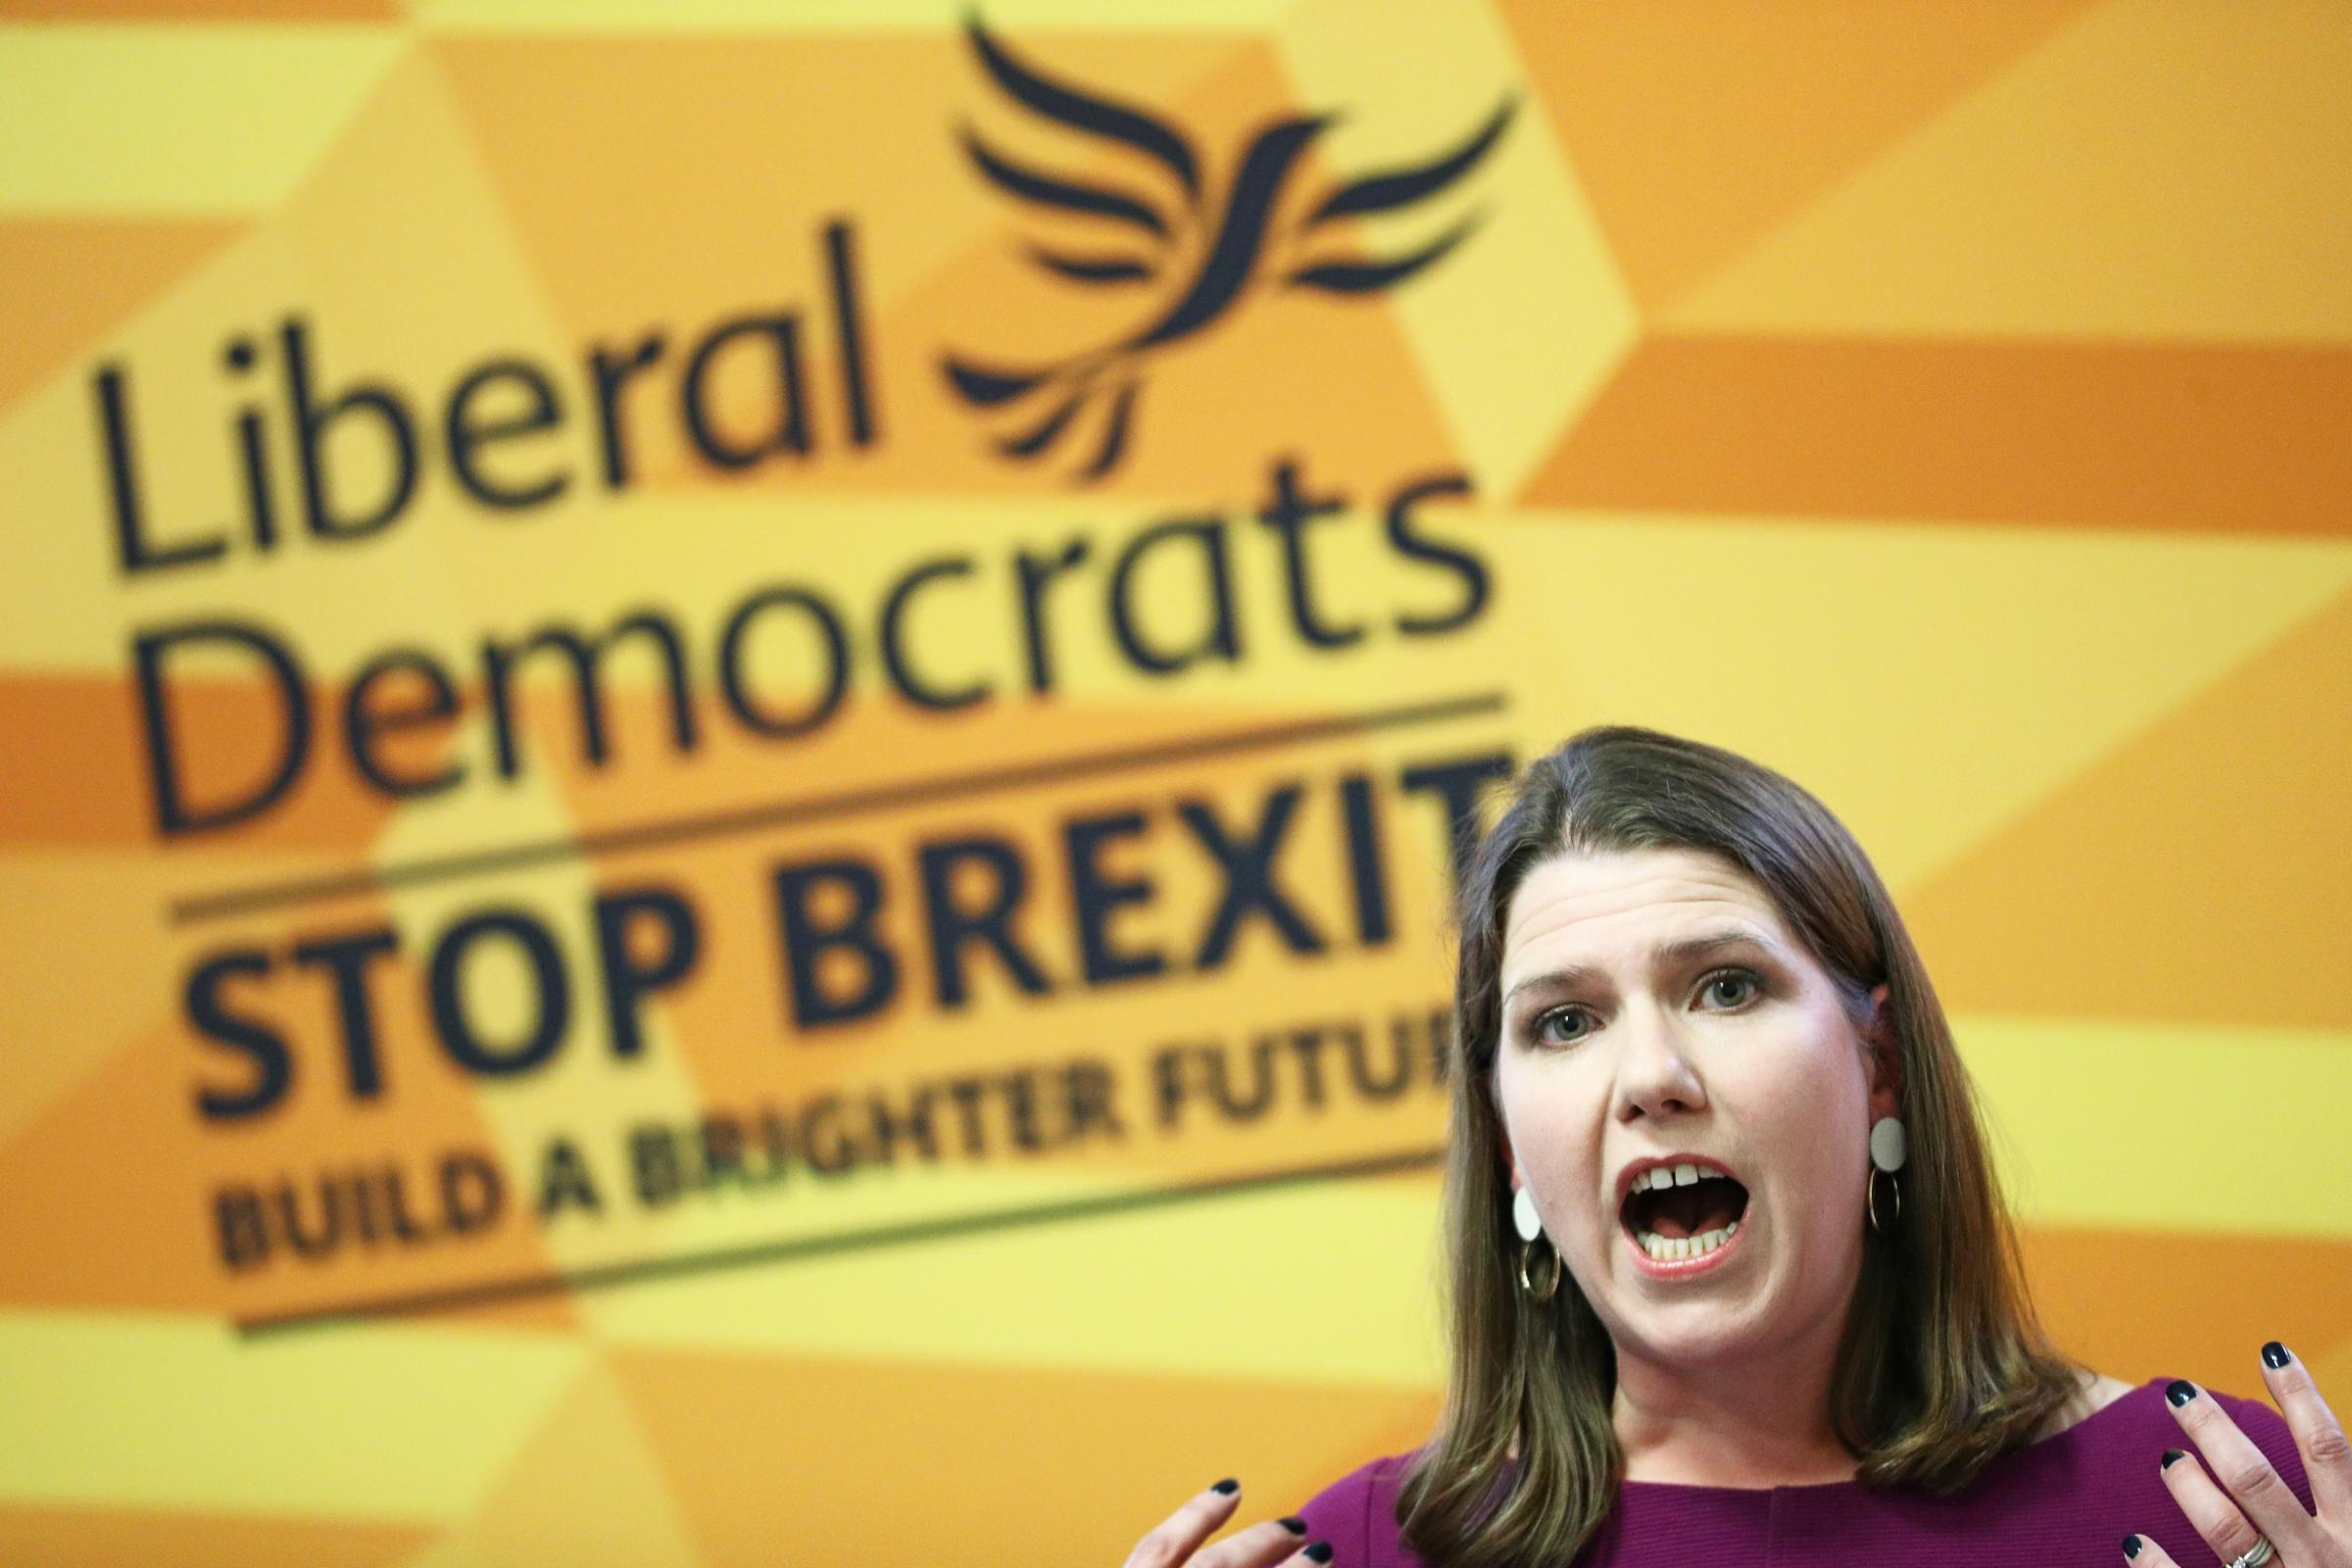 Lib Dems get Scottish names & constituency wrong on leaflet